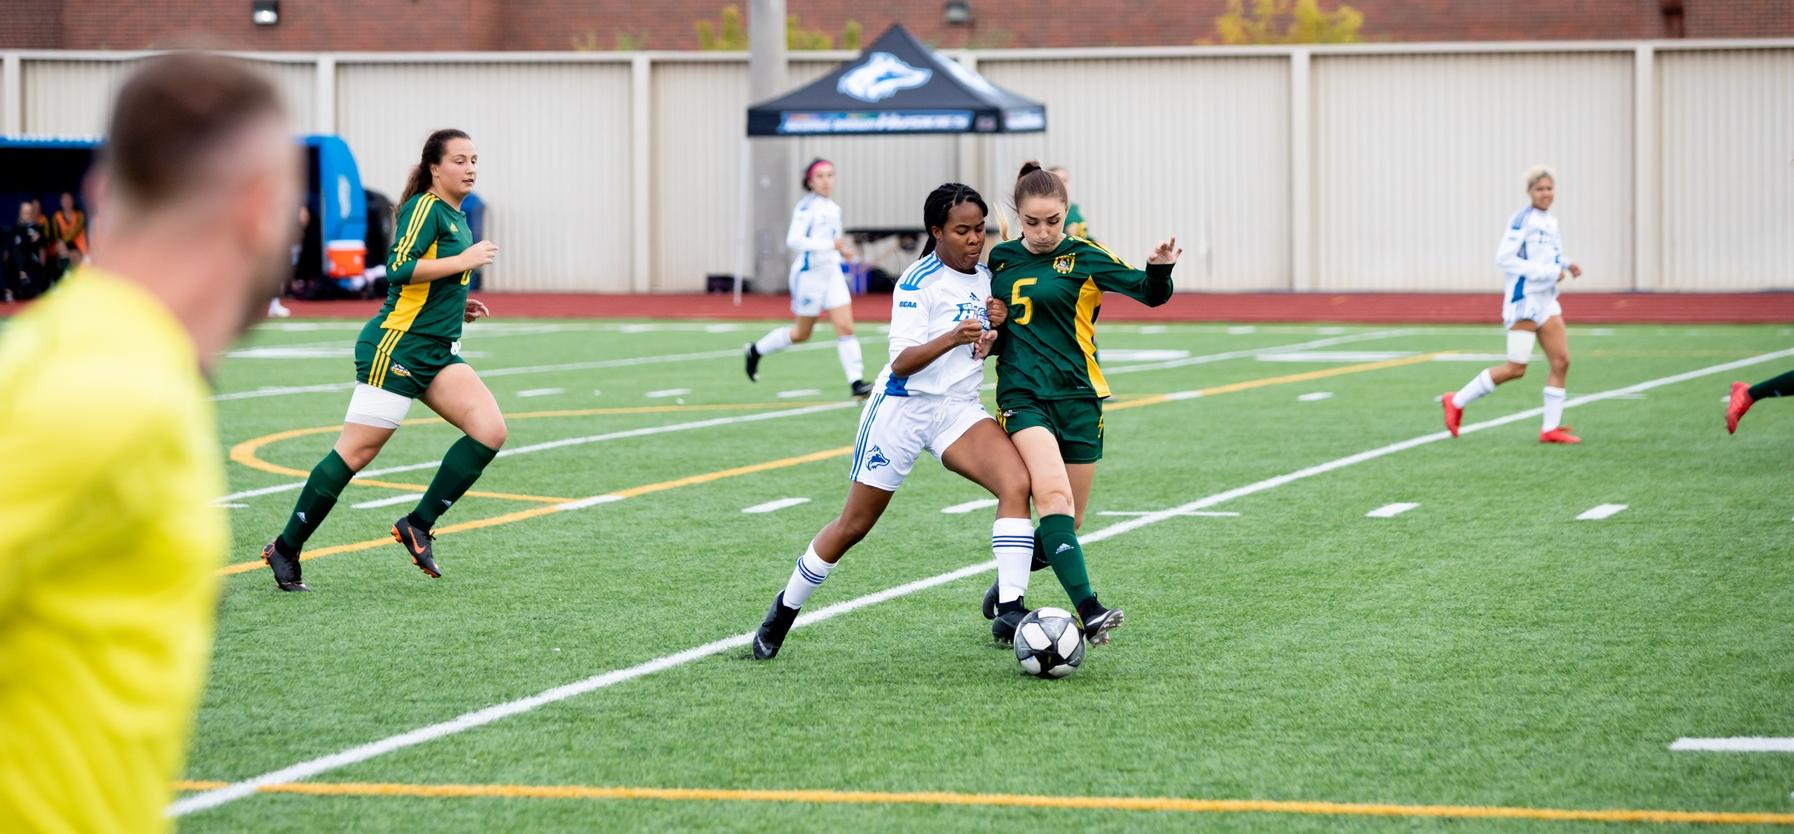 Brianna Samuels-McLaughlin battles for ball with #5 Durham College